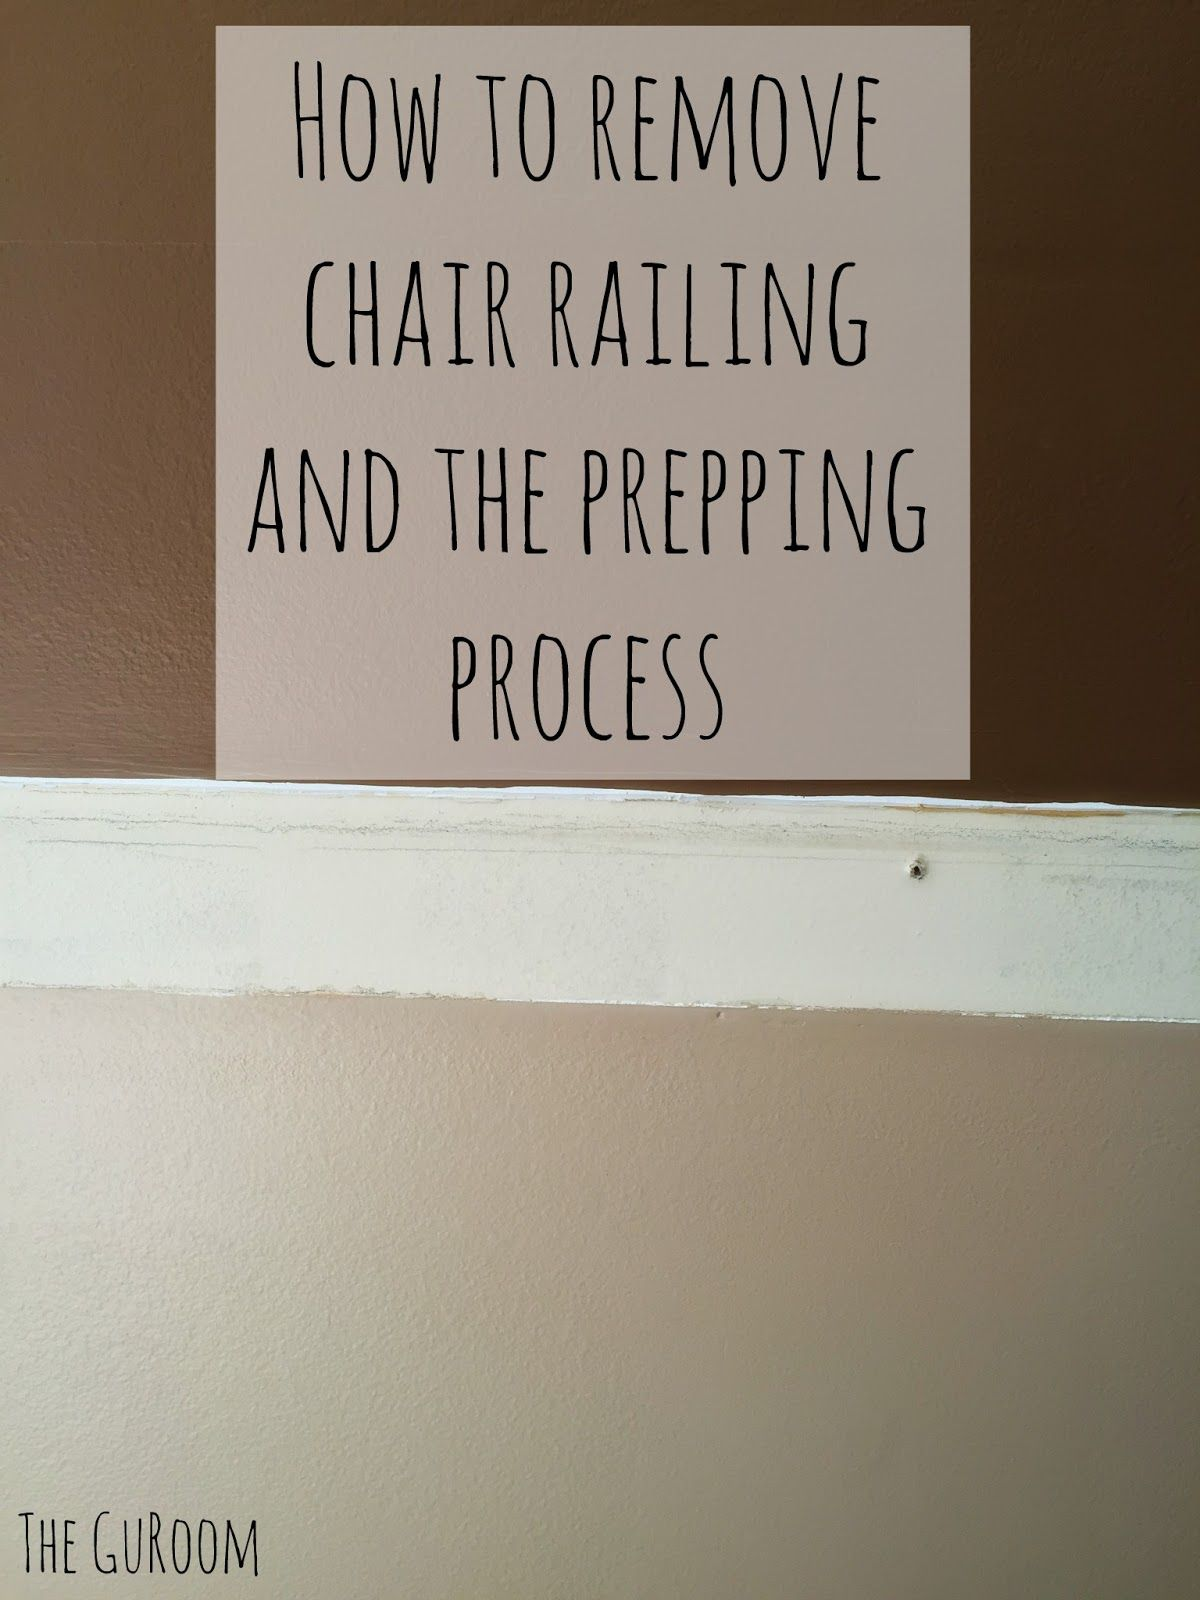 Removing Chair Rail and Wall Prep - The GURoom | My Blog ...